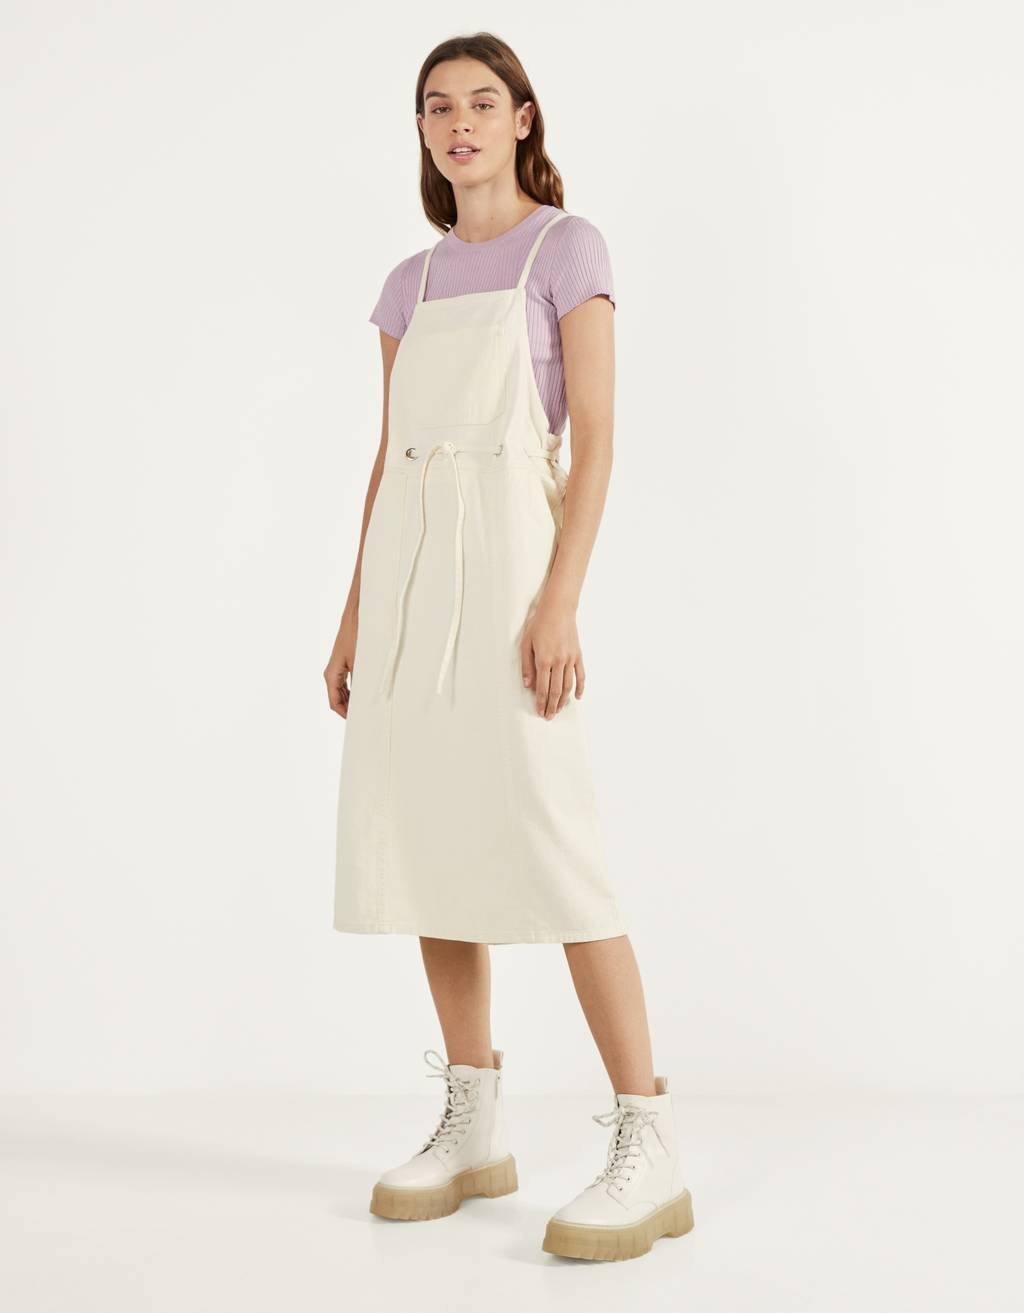 Pinafore dress with thin straps